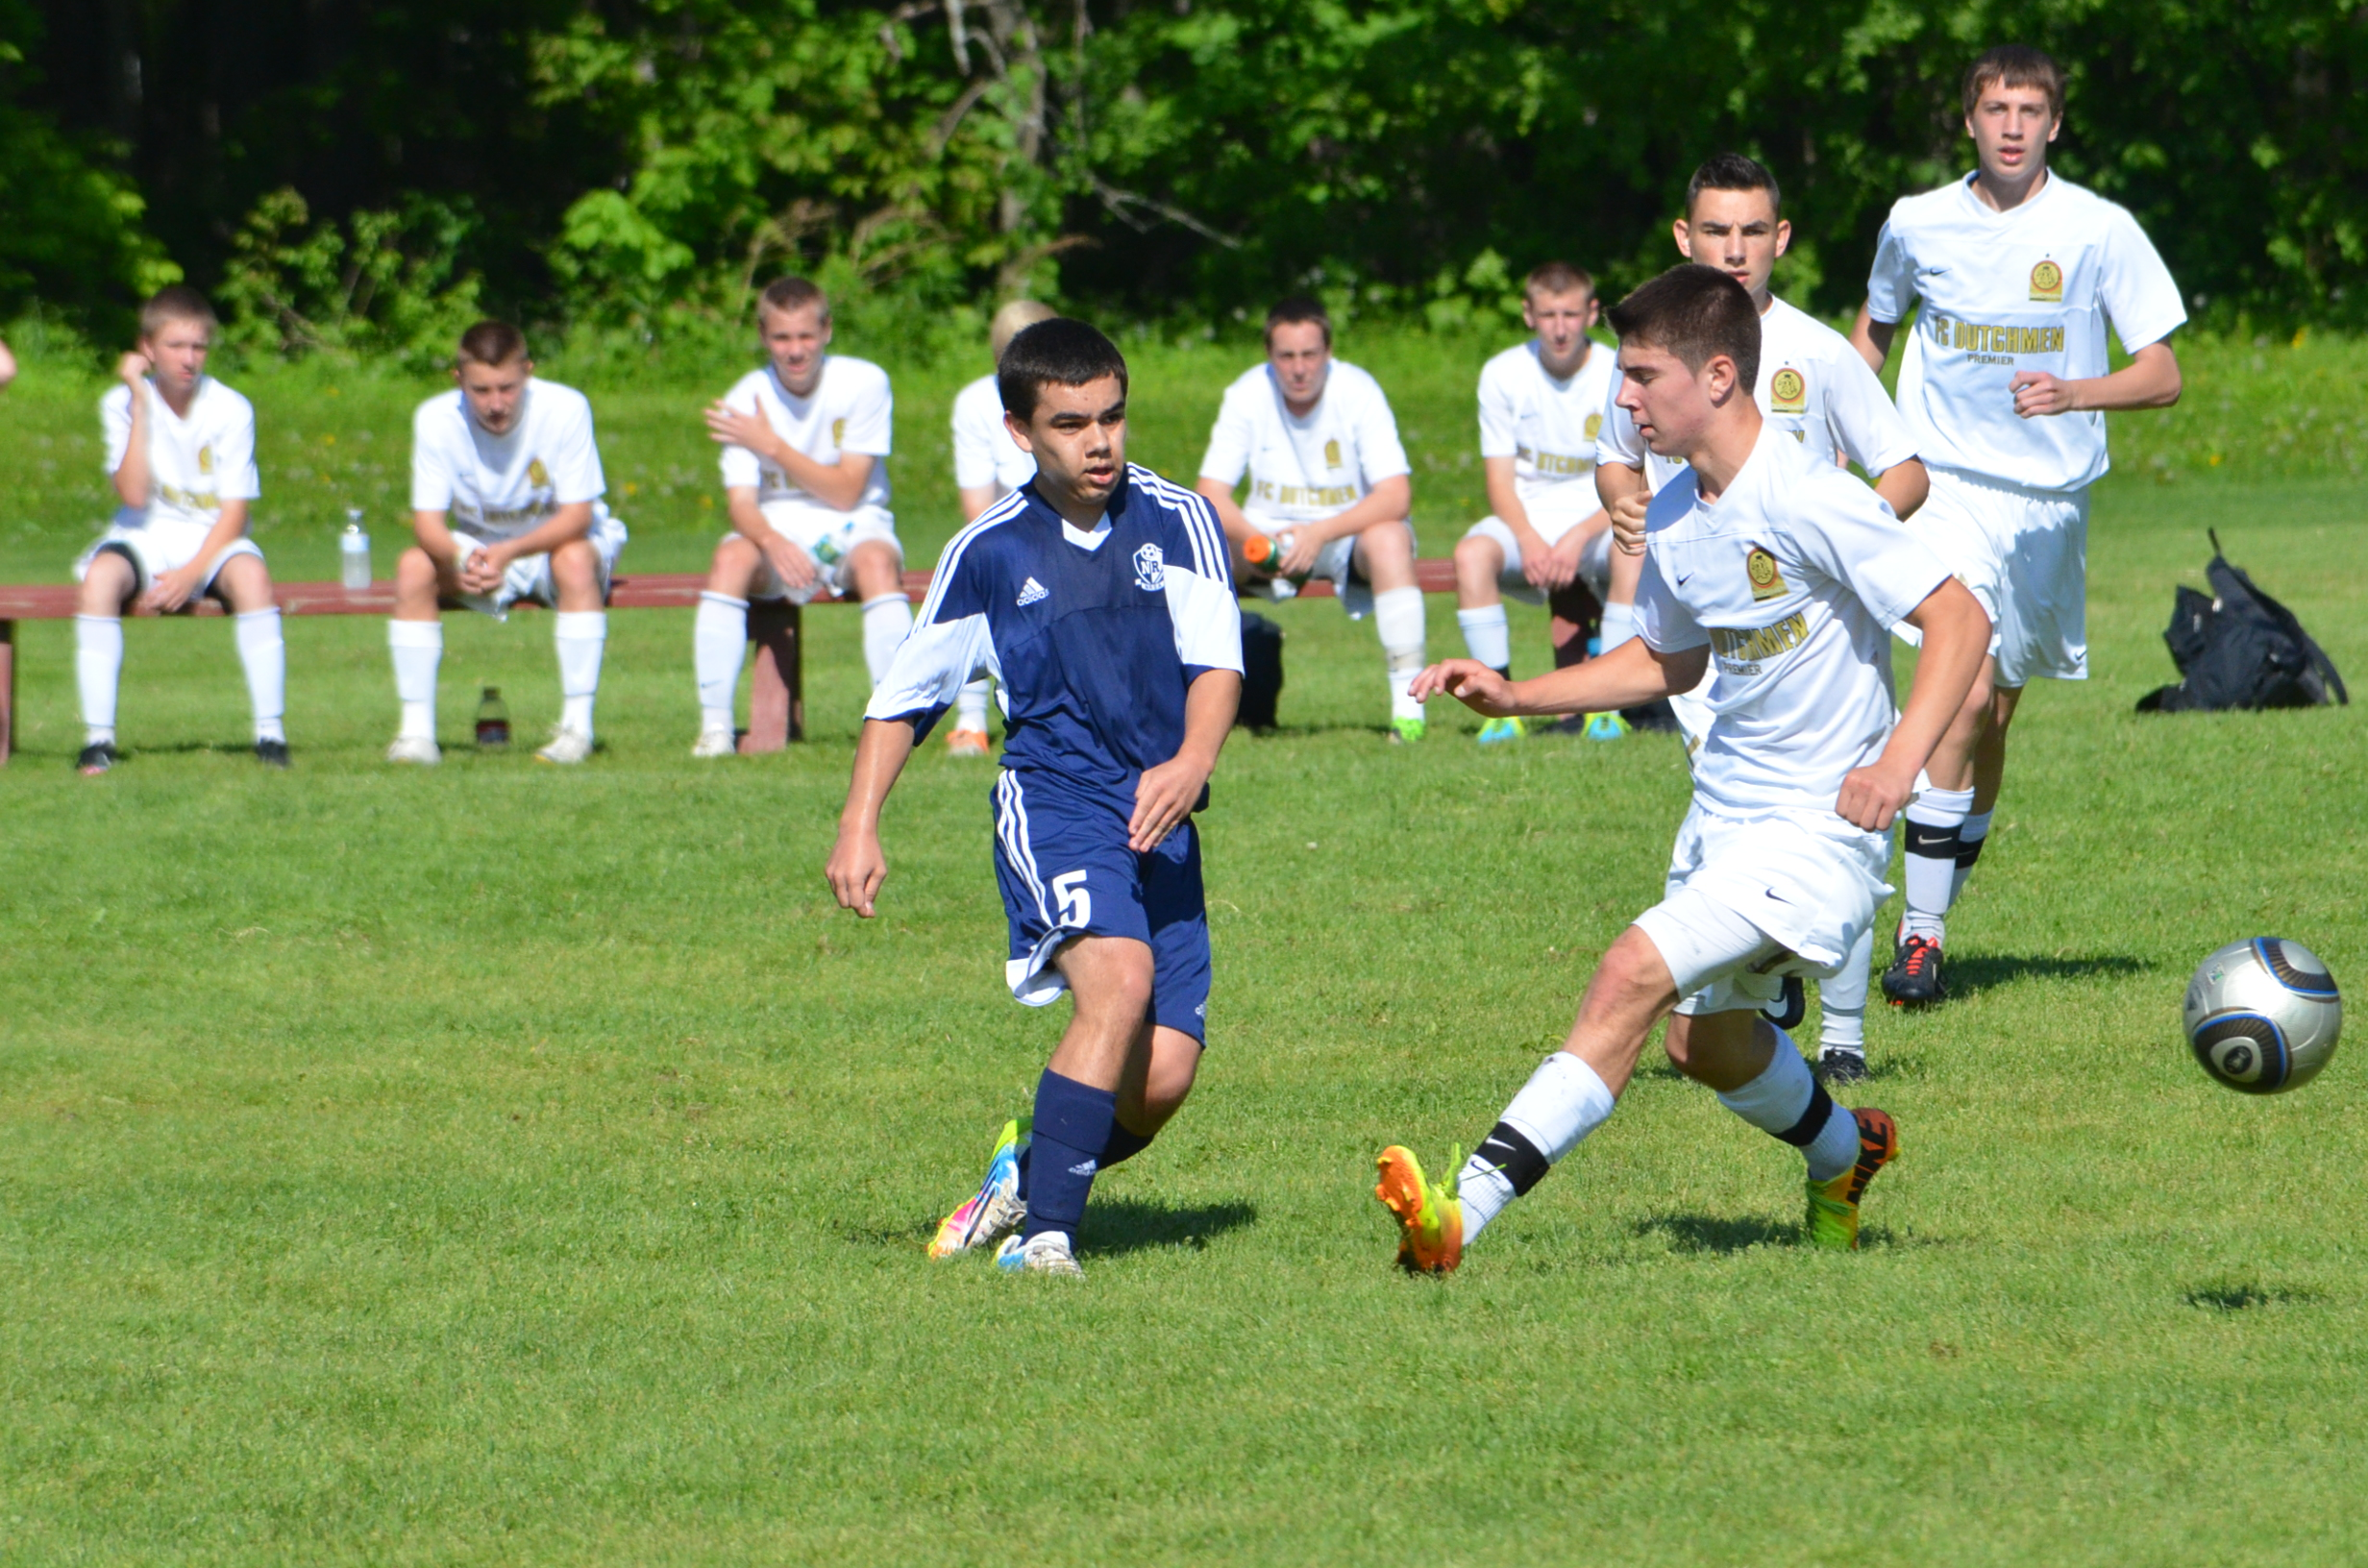 memorial day soccer tournaments in nh